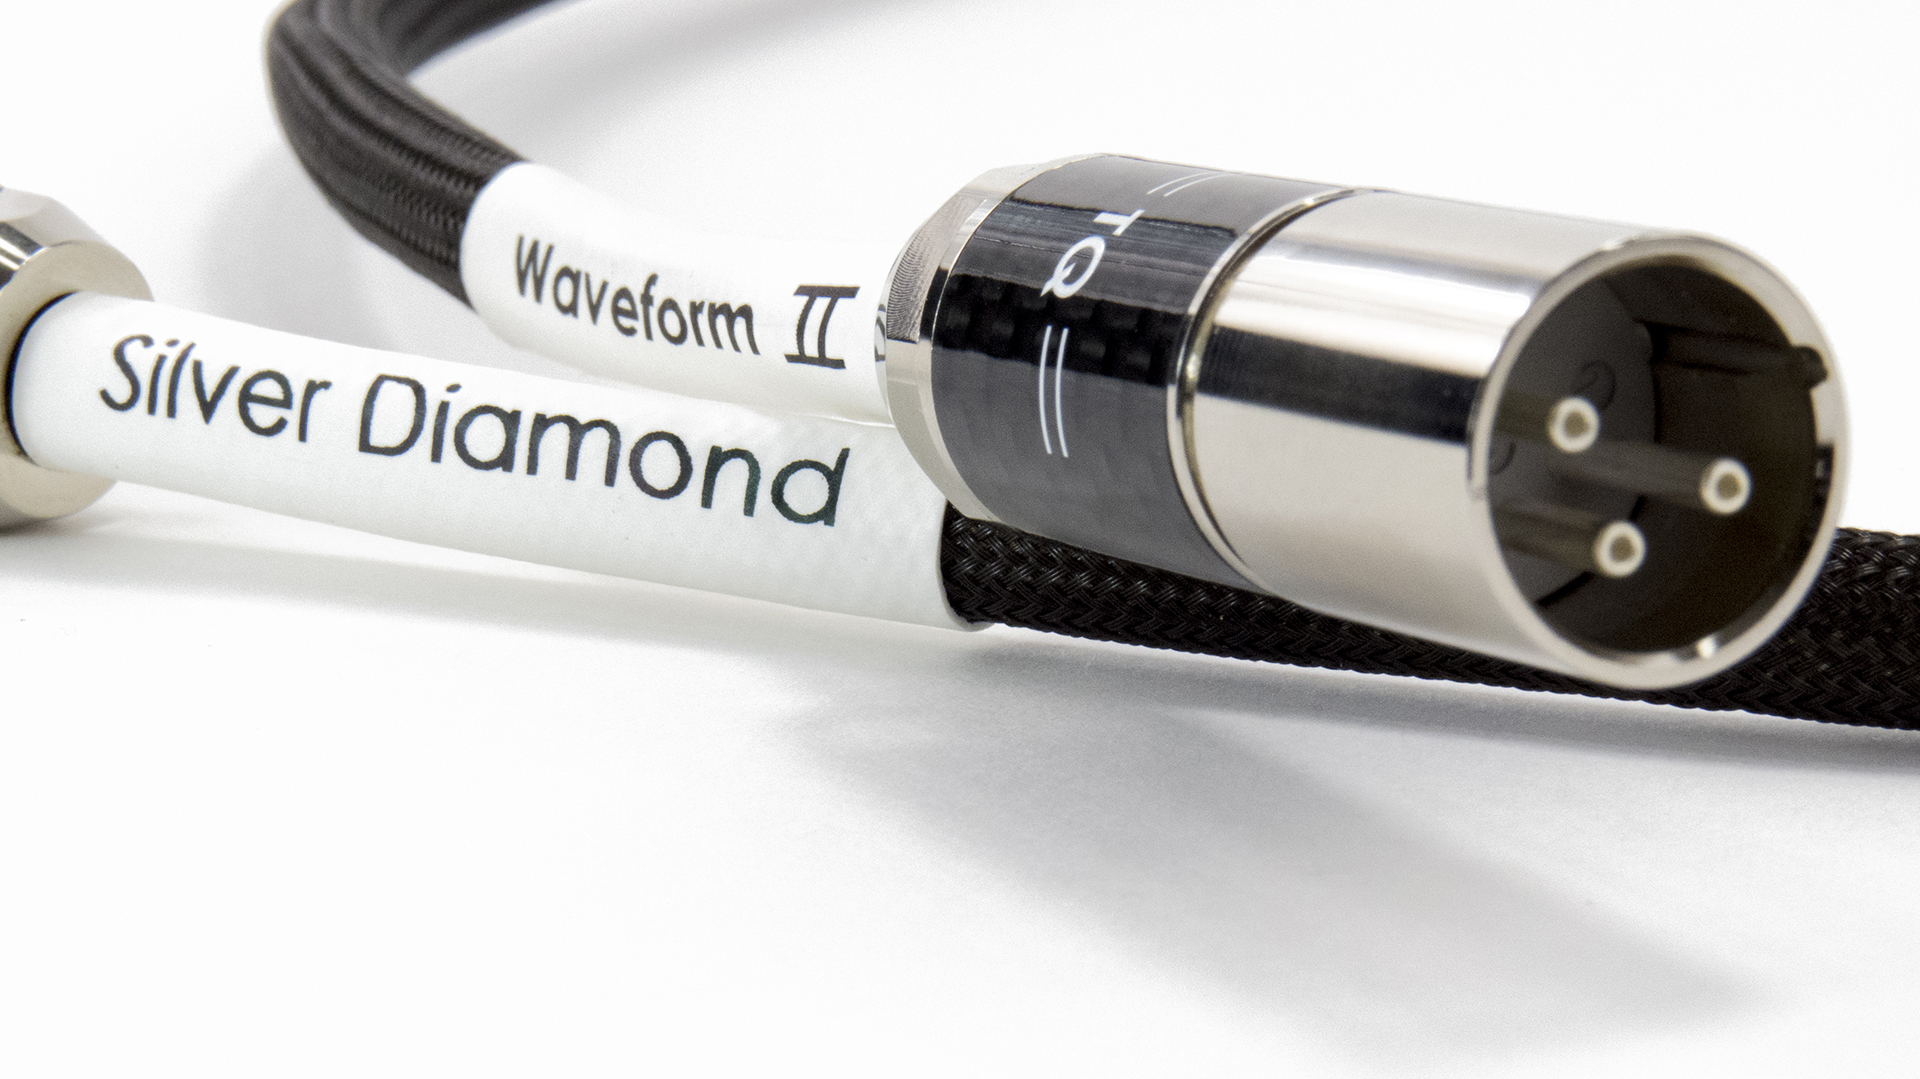 Tellurium Q | Silver Diamond | Digital Waveform™ II XLR